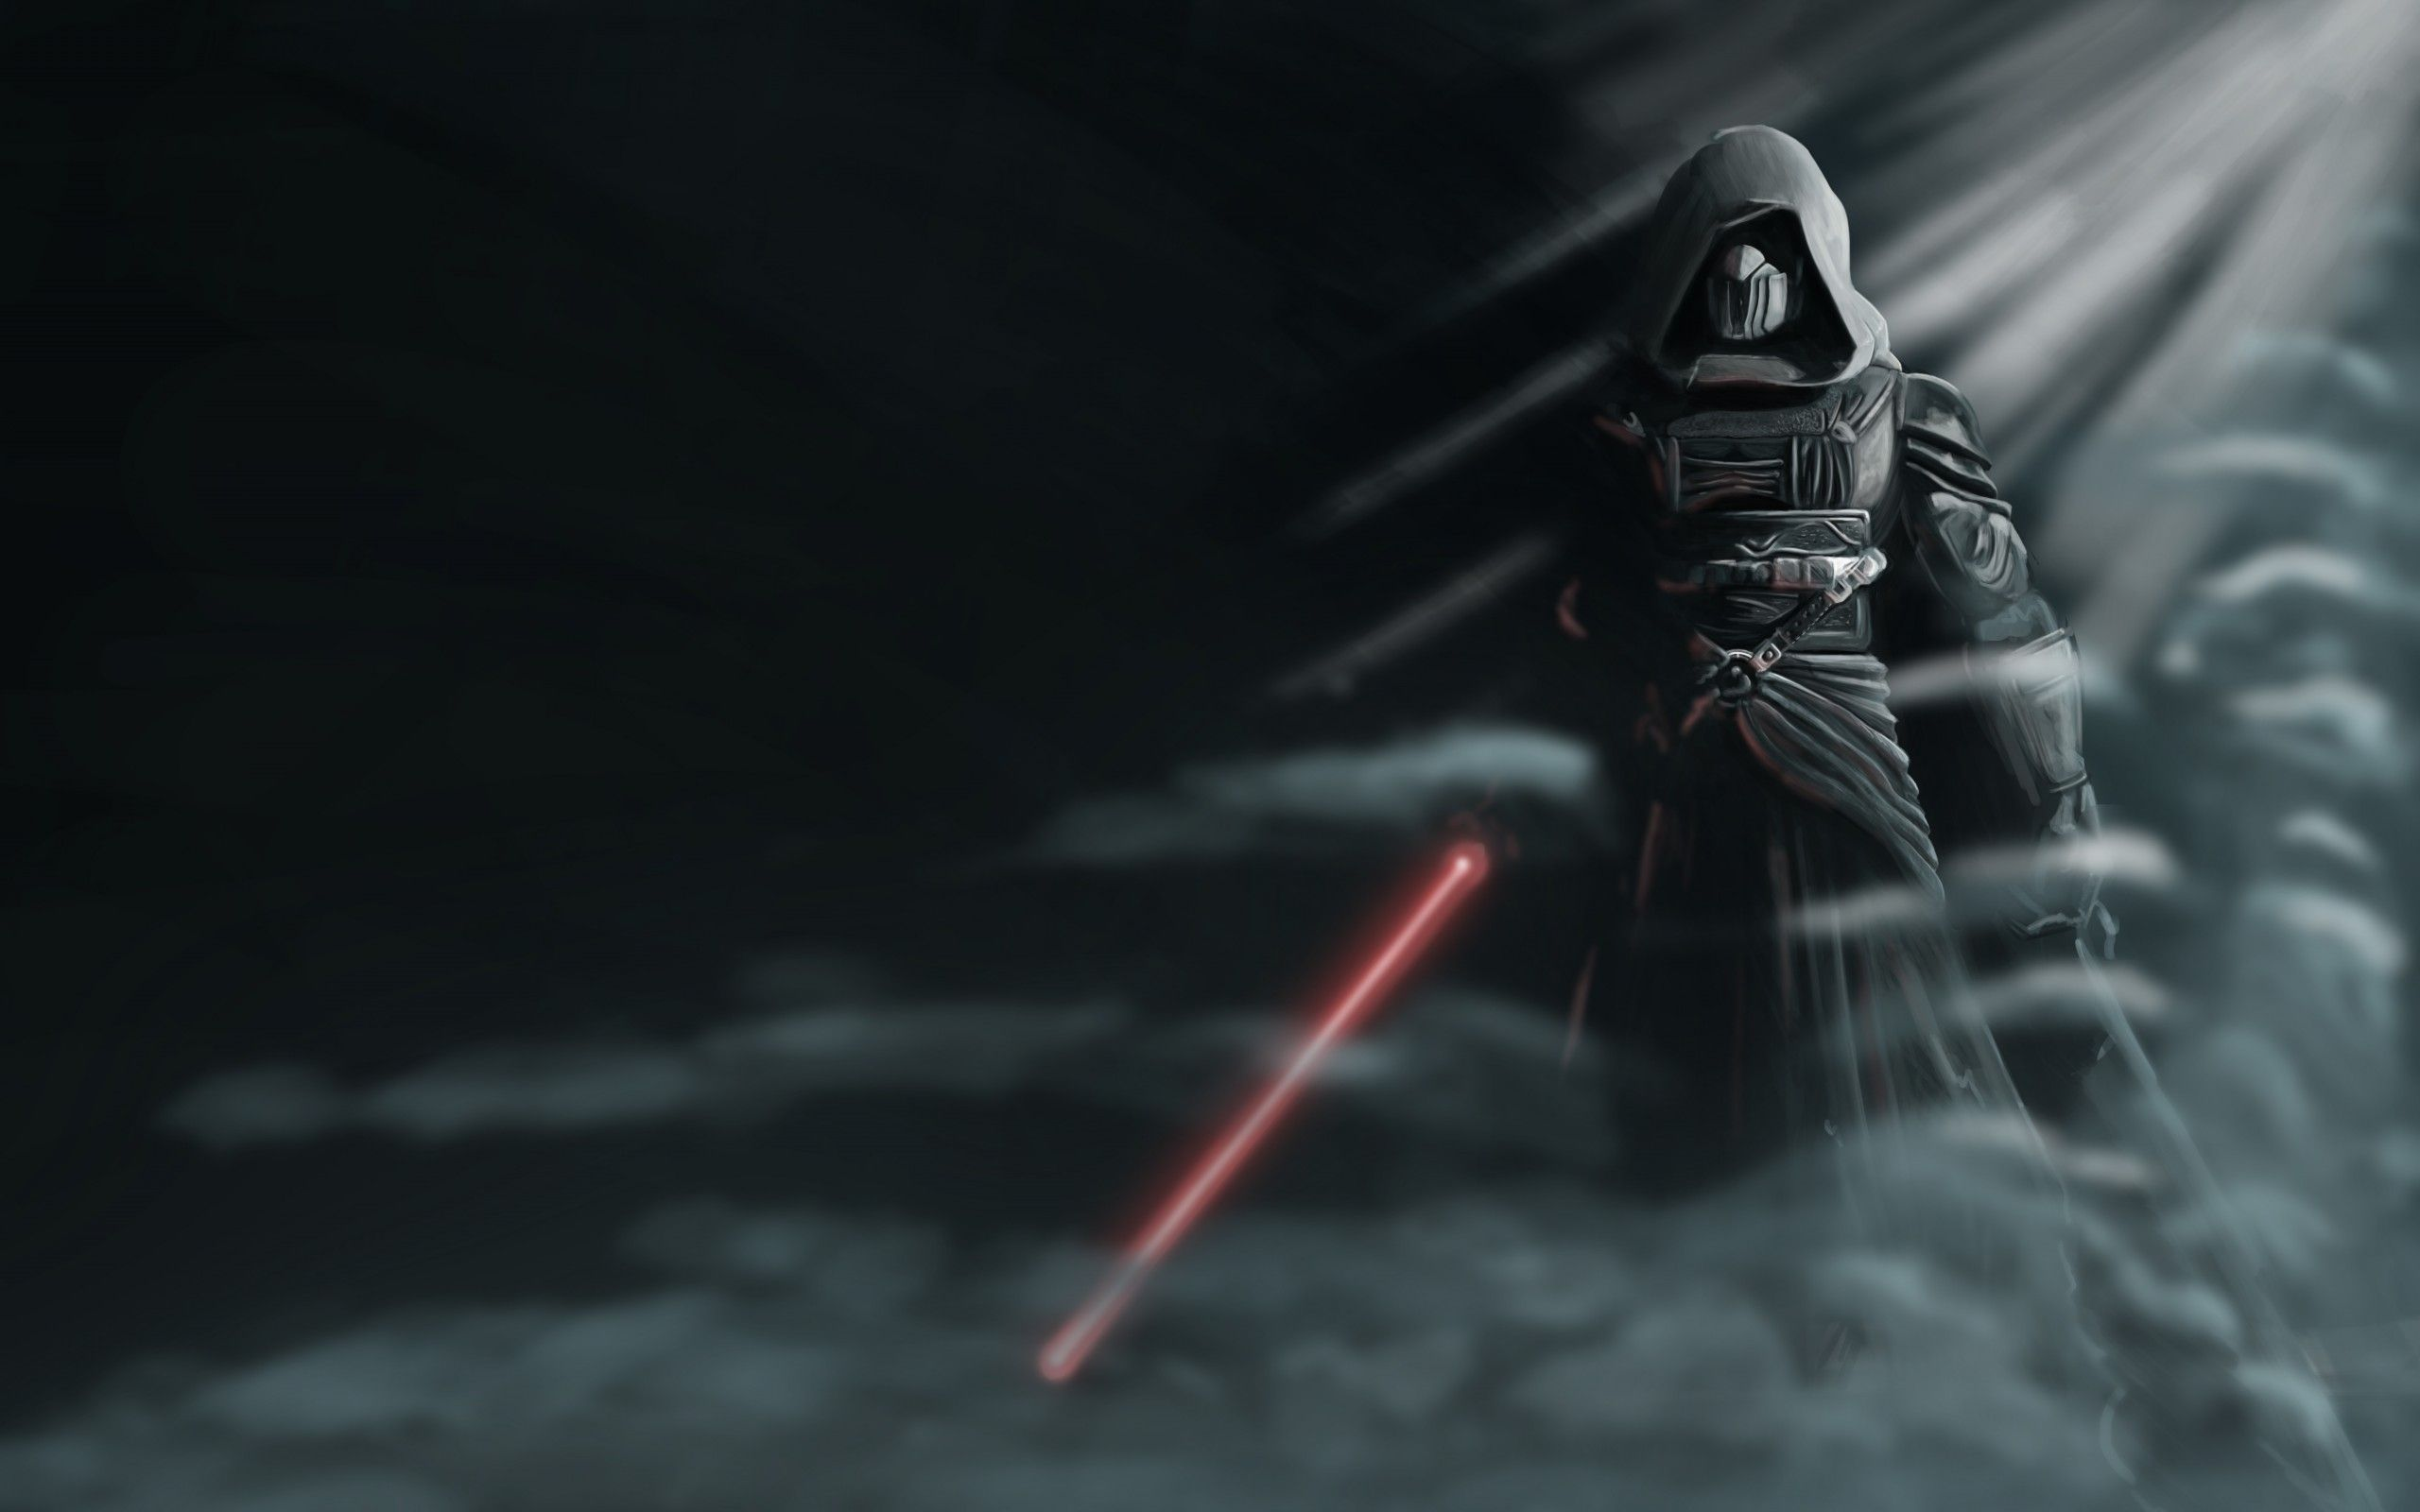 images of darth vader star wars